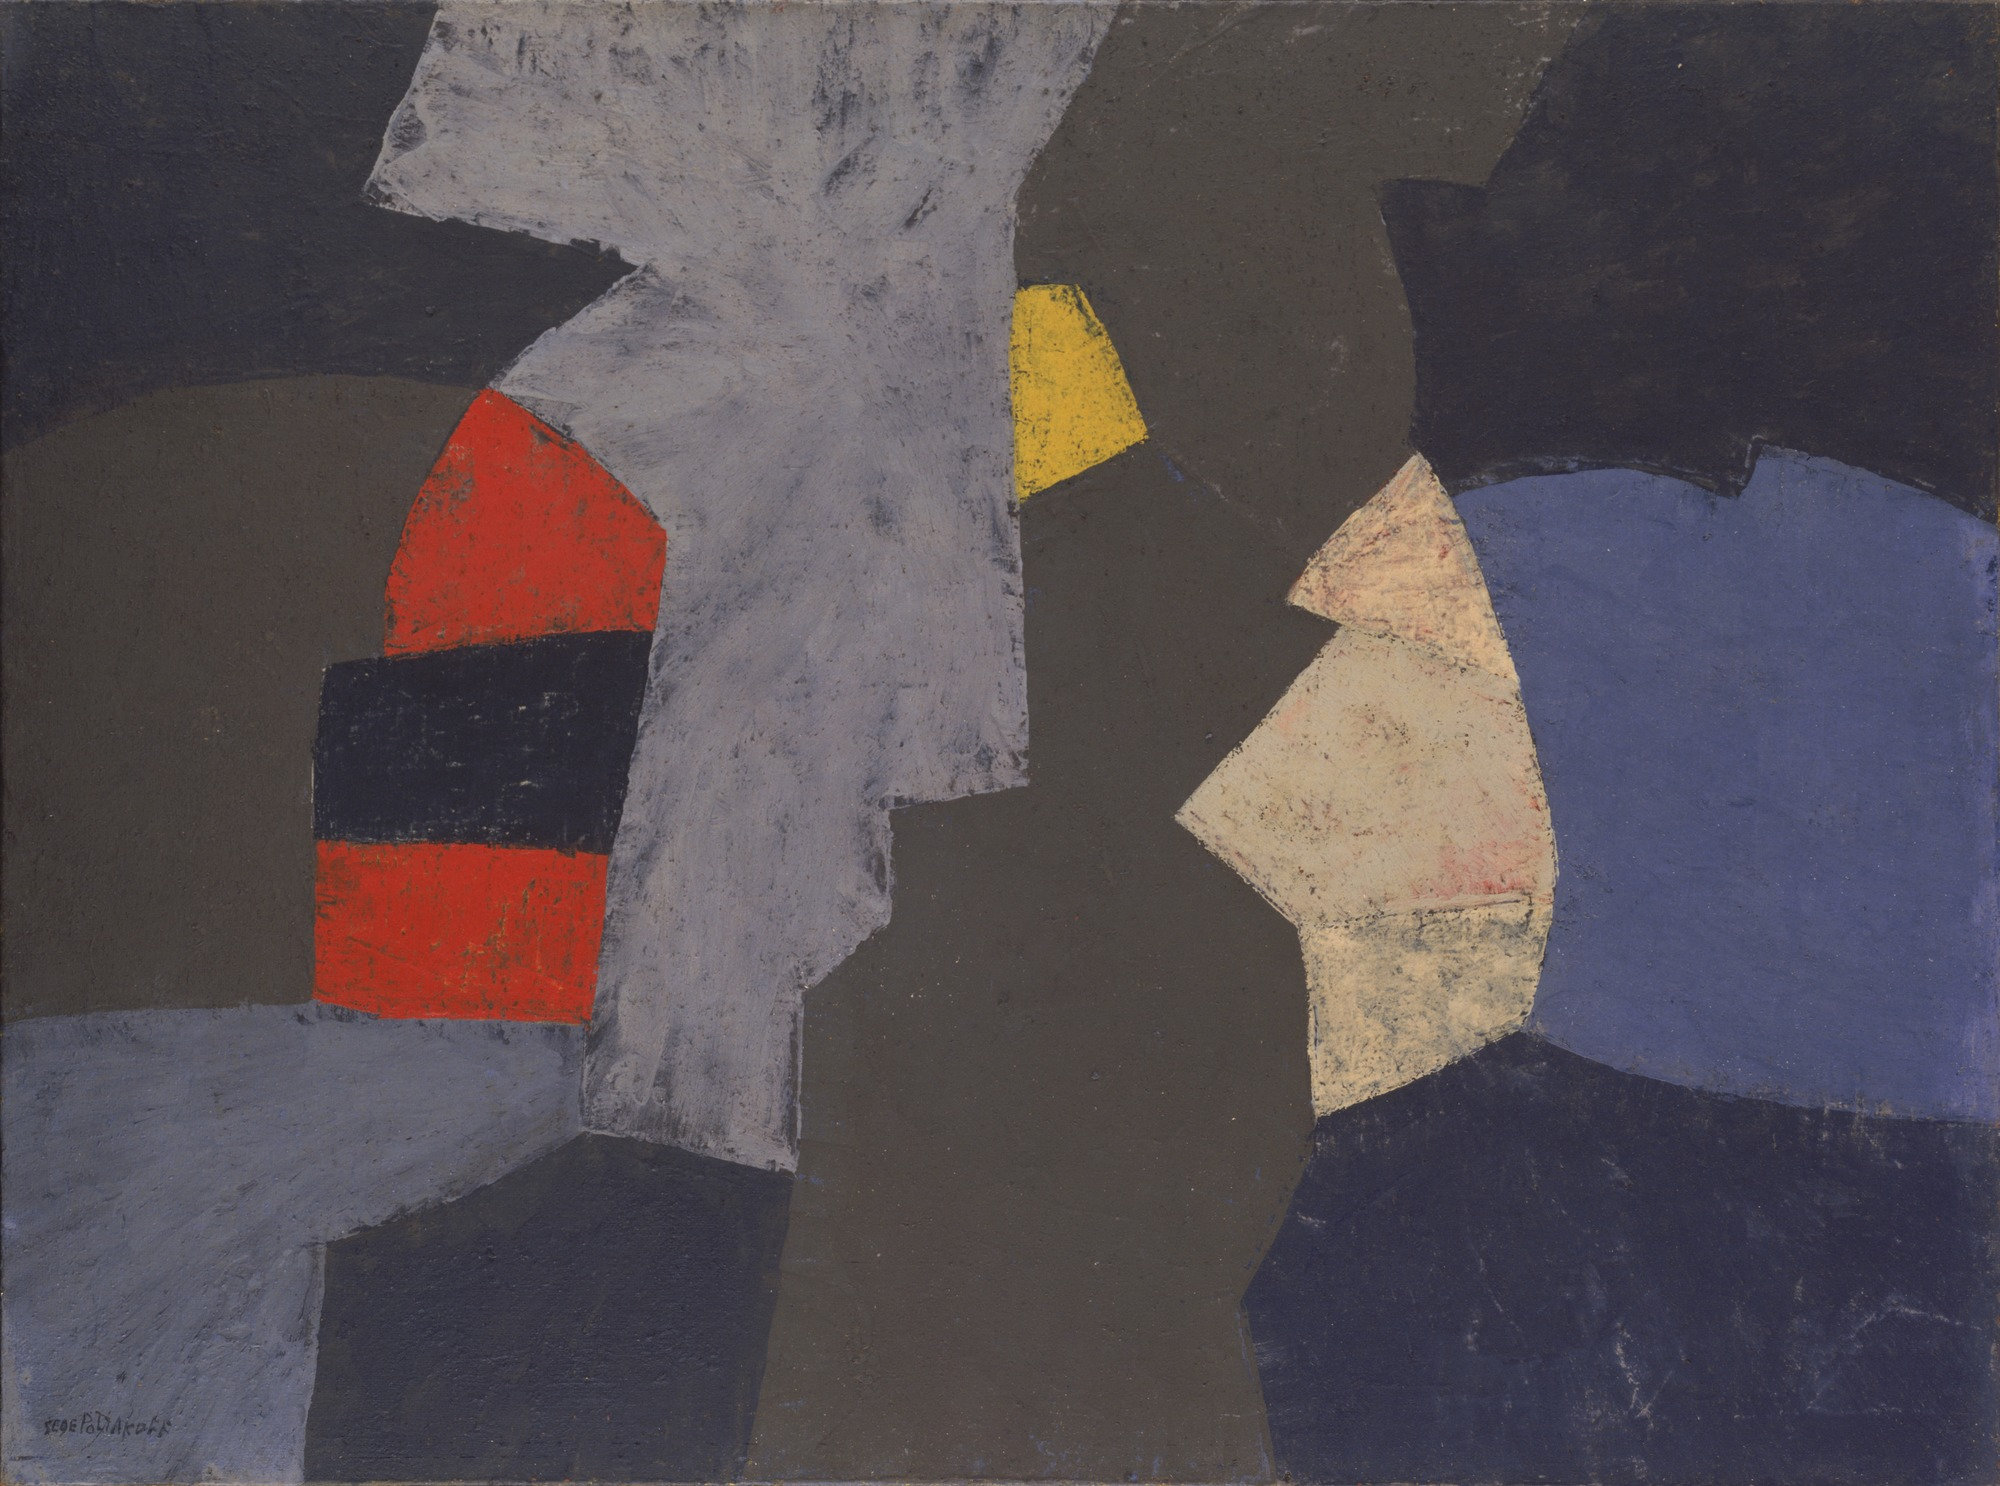 serge poliakoff, composition, reputation